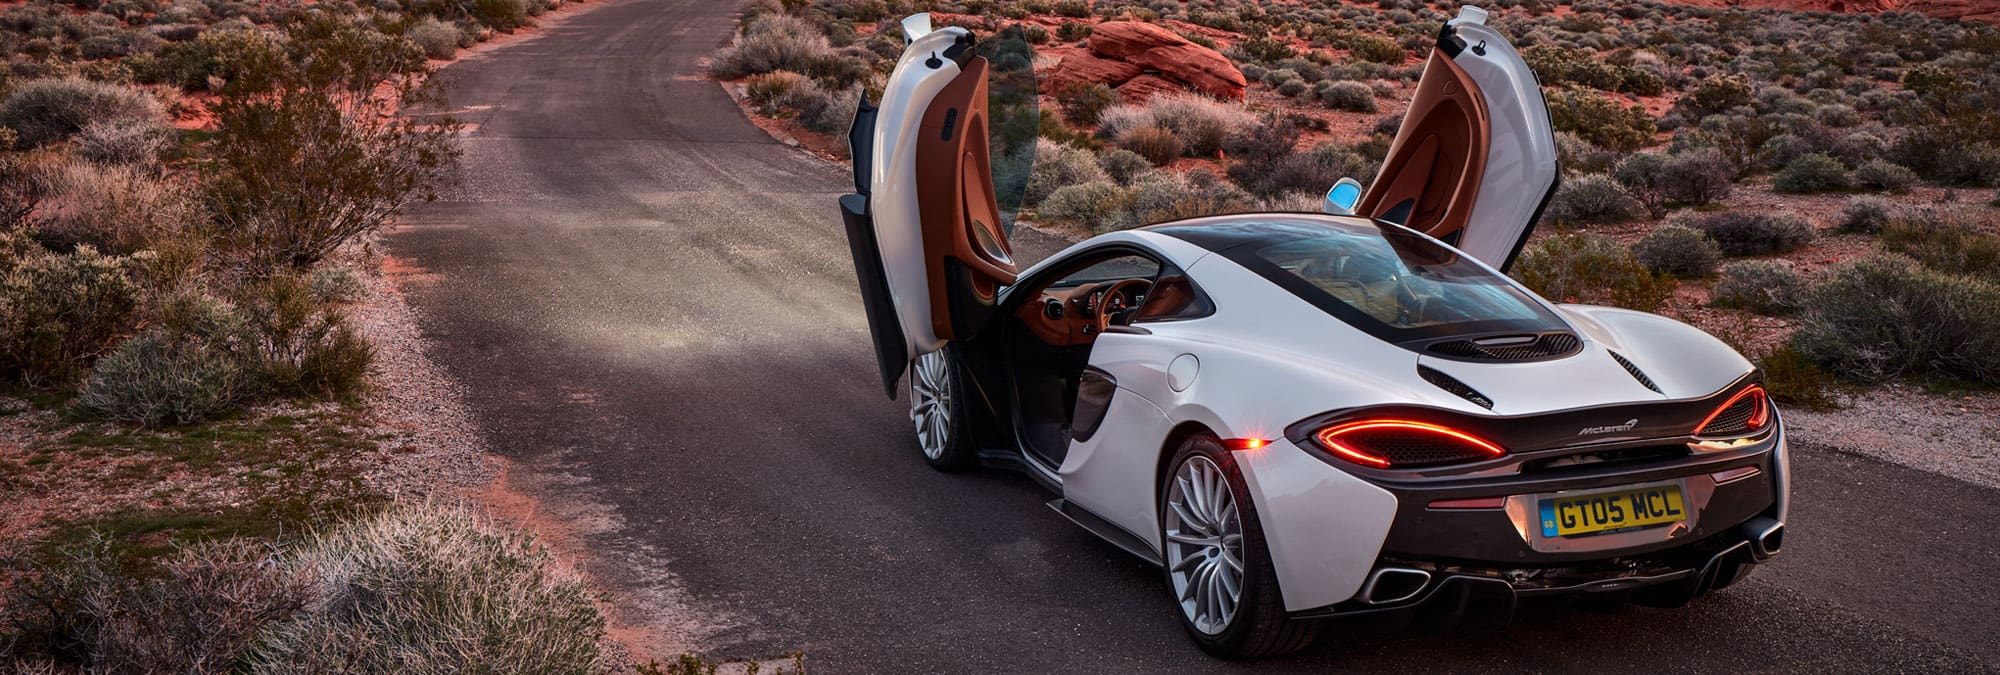 mclaren-570gt-white-for-sale-rear-3quarter-doors-up-hero